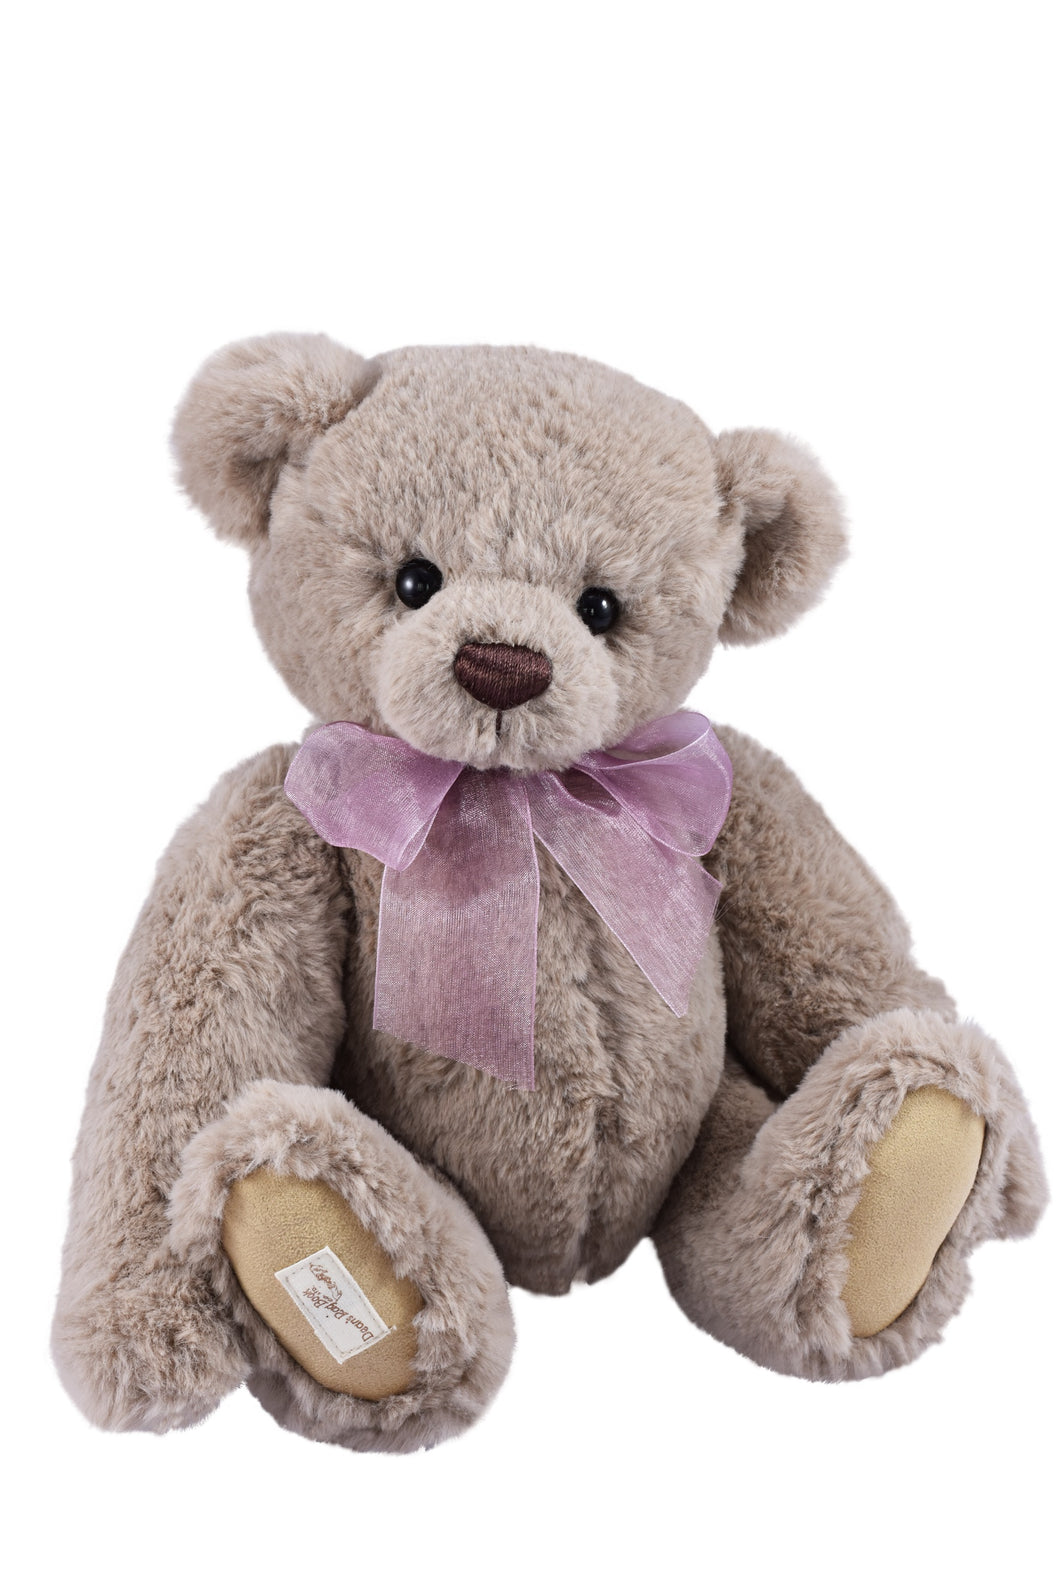 TEDDY WILLOW / DEAN'S PLUSH LIMITED BEAR